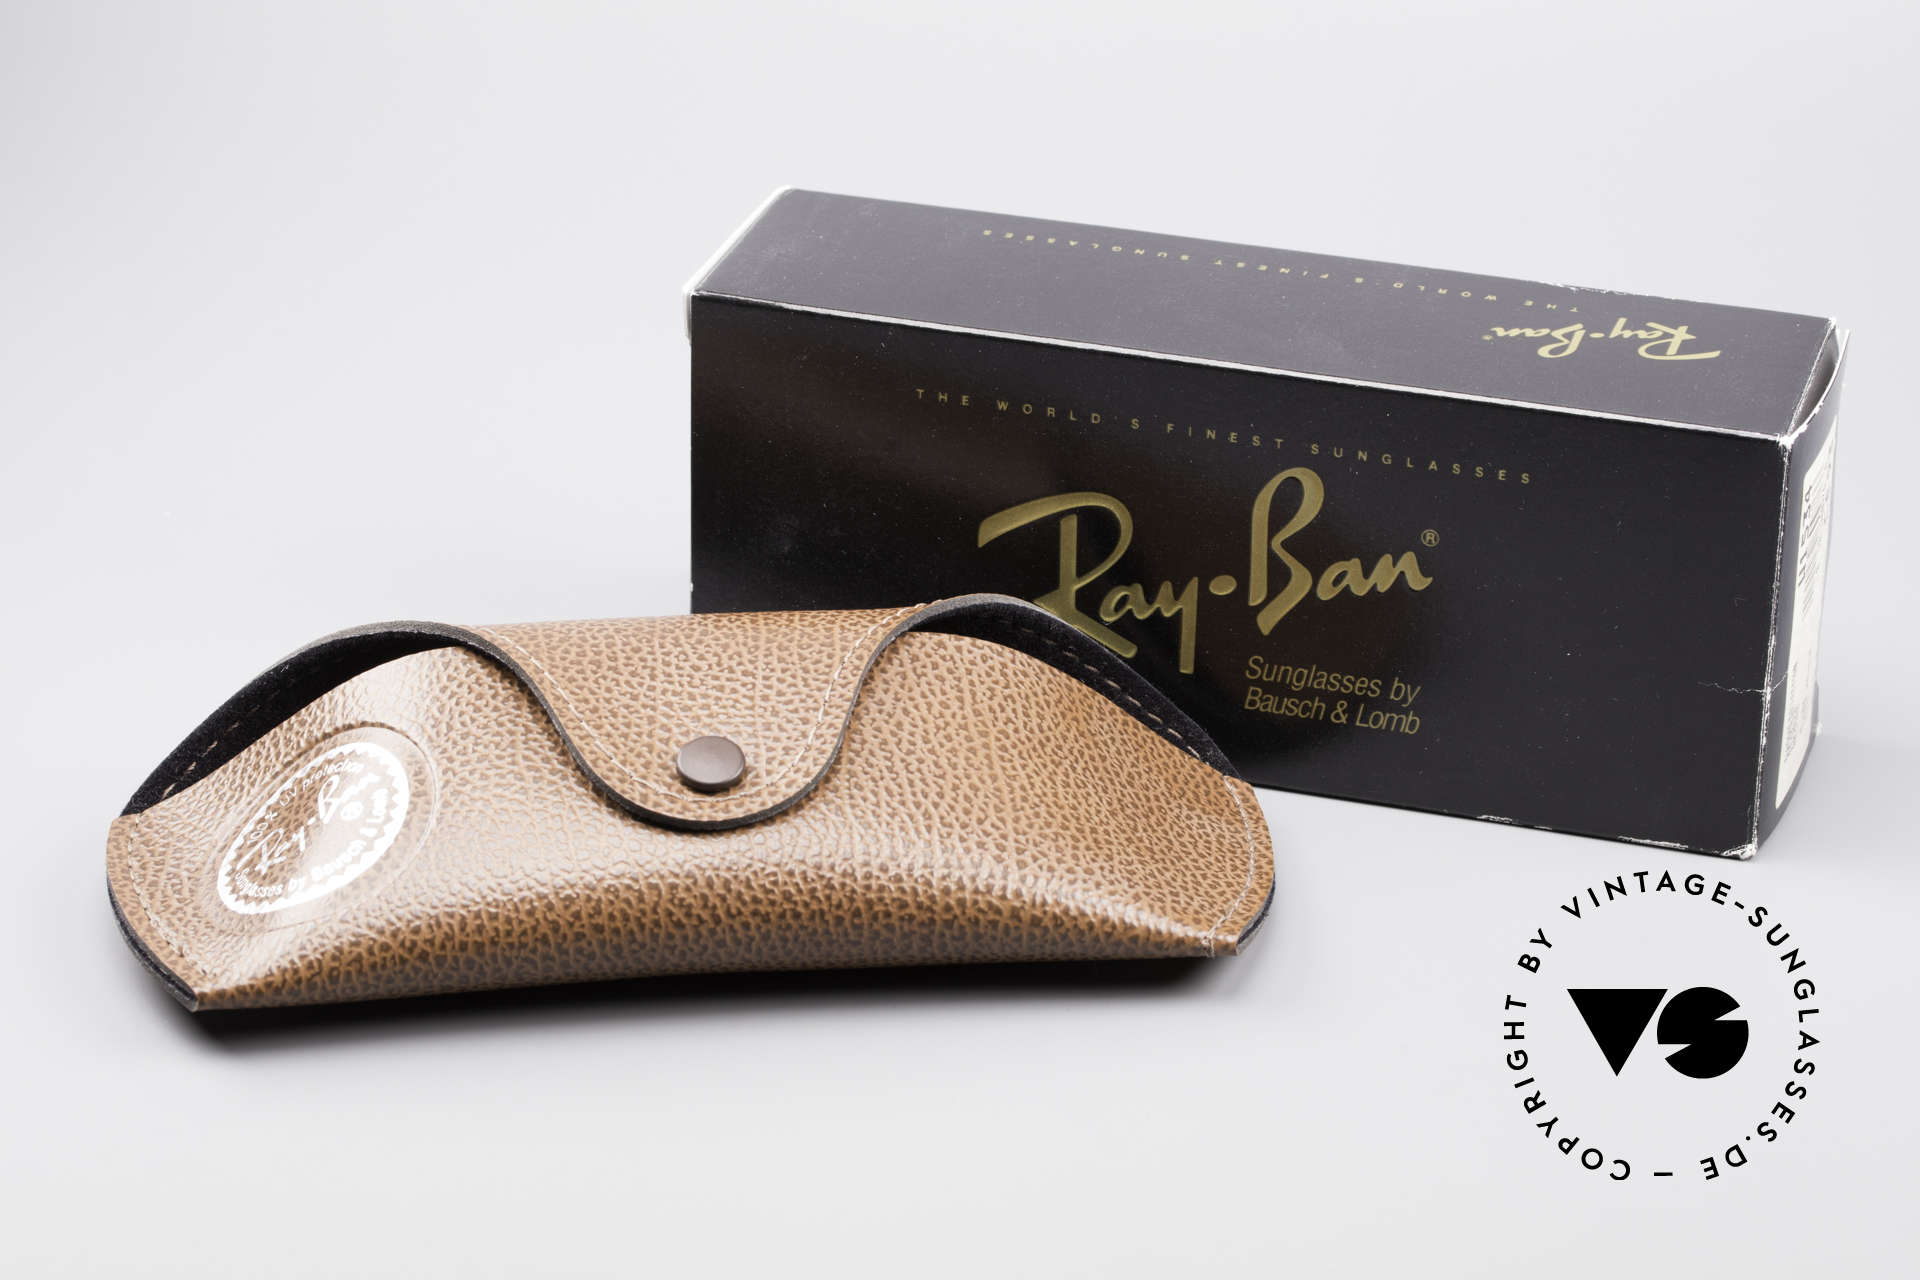 Ray Ban Deco Metals Wrap Old Bausch Lomb Ray-Ban USA, Size: medium, Made for Men and Women